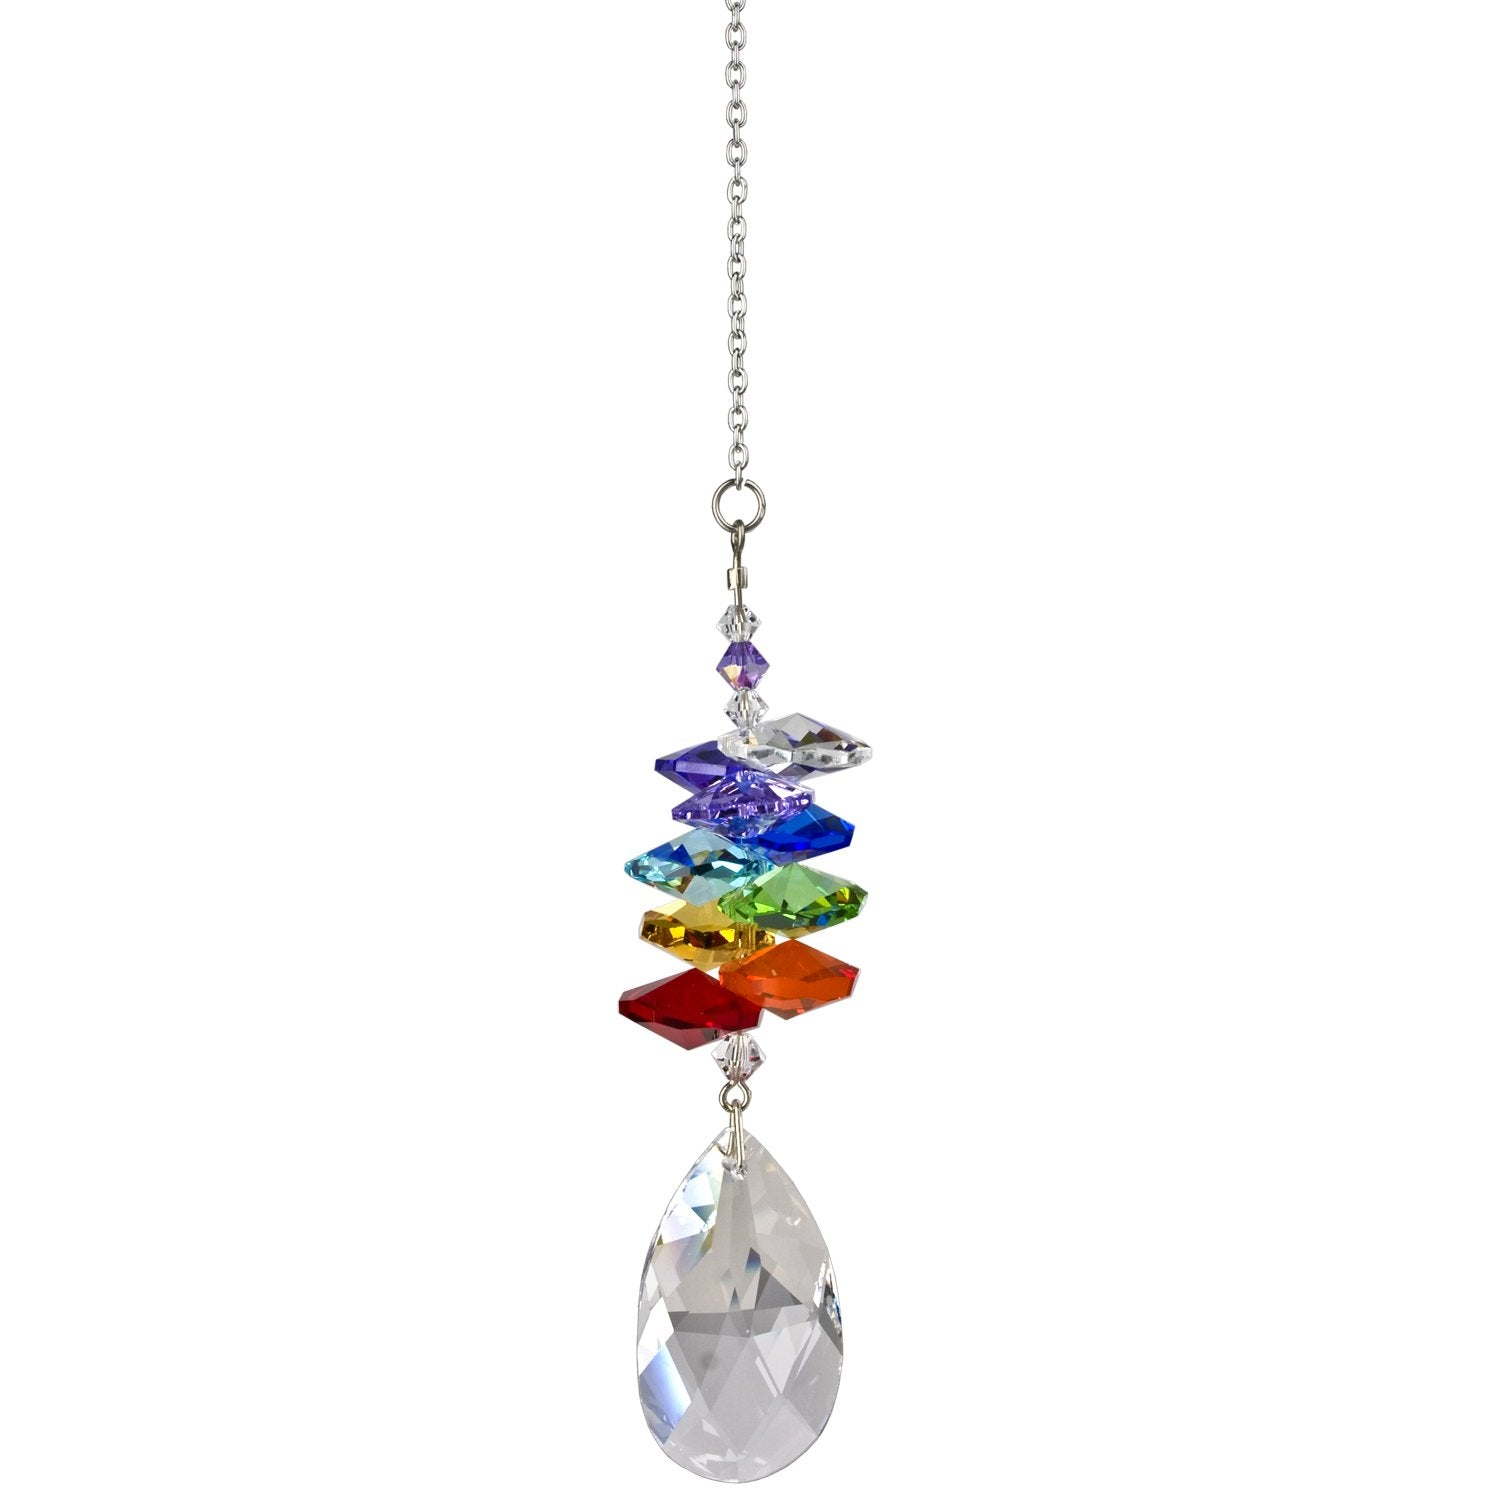 Crystal Rainbow Cascade Suncatcher - Almond alternate product image